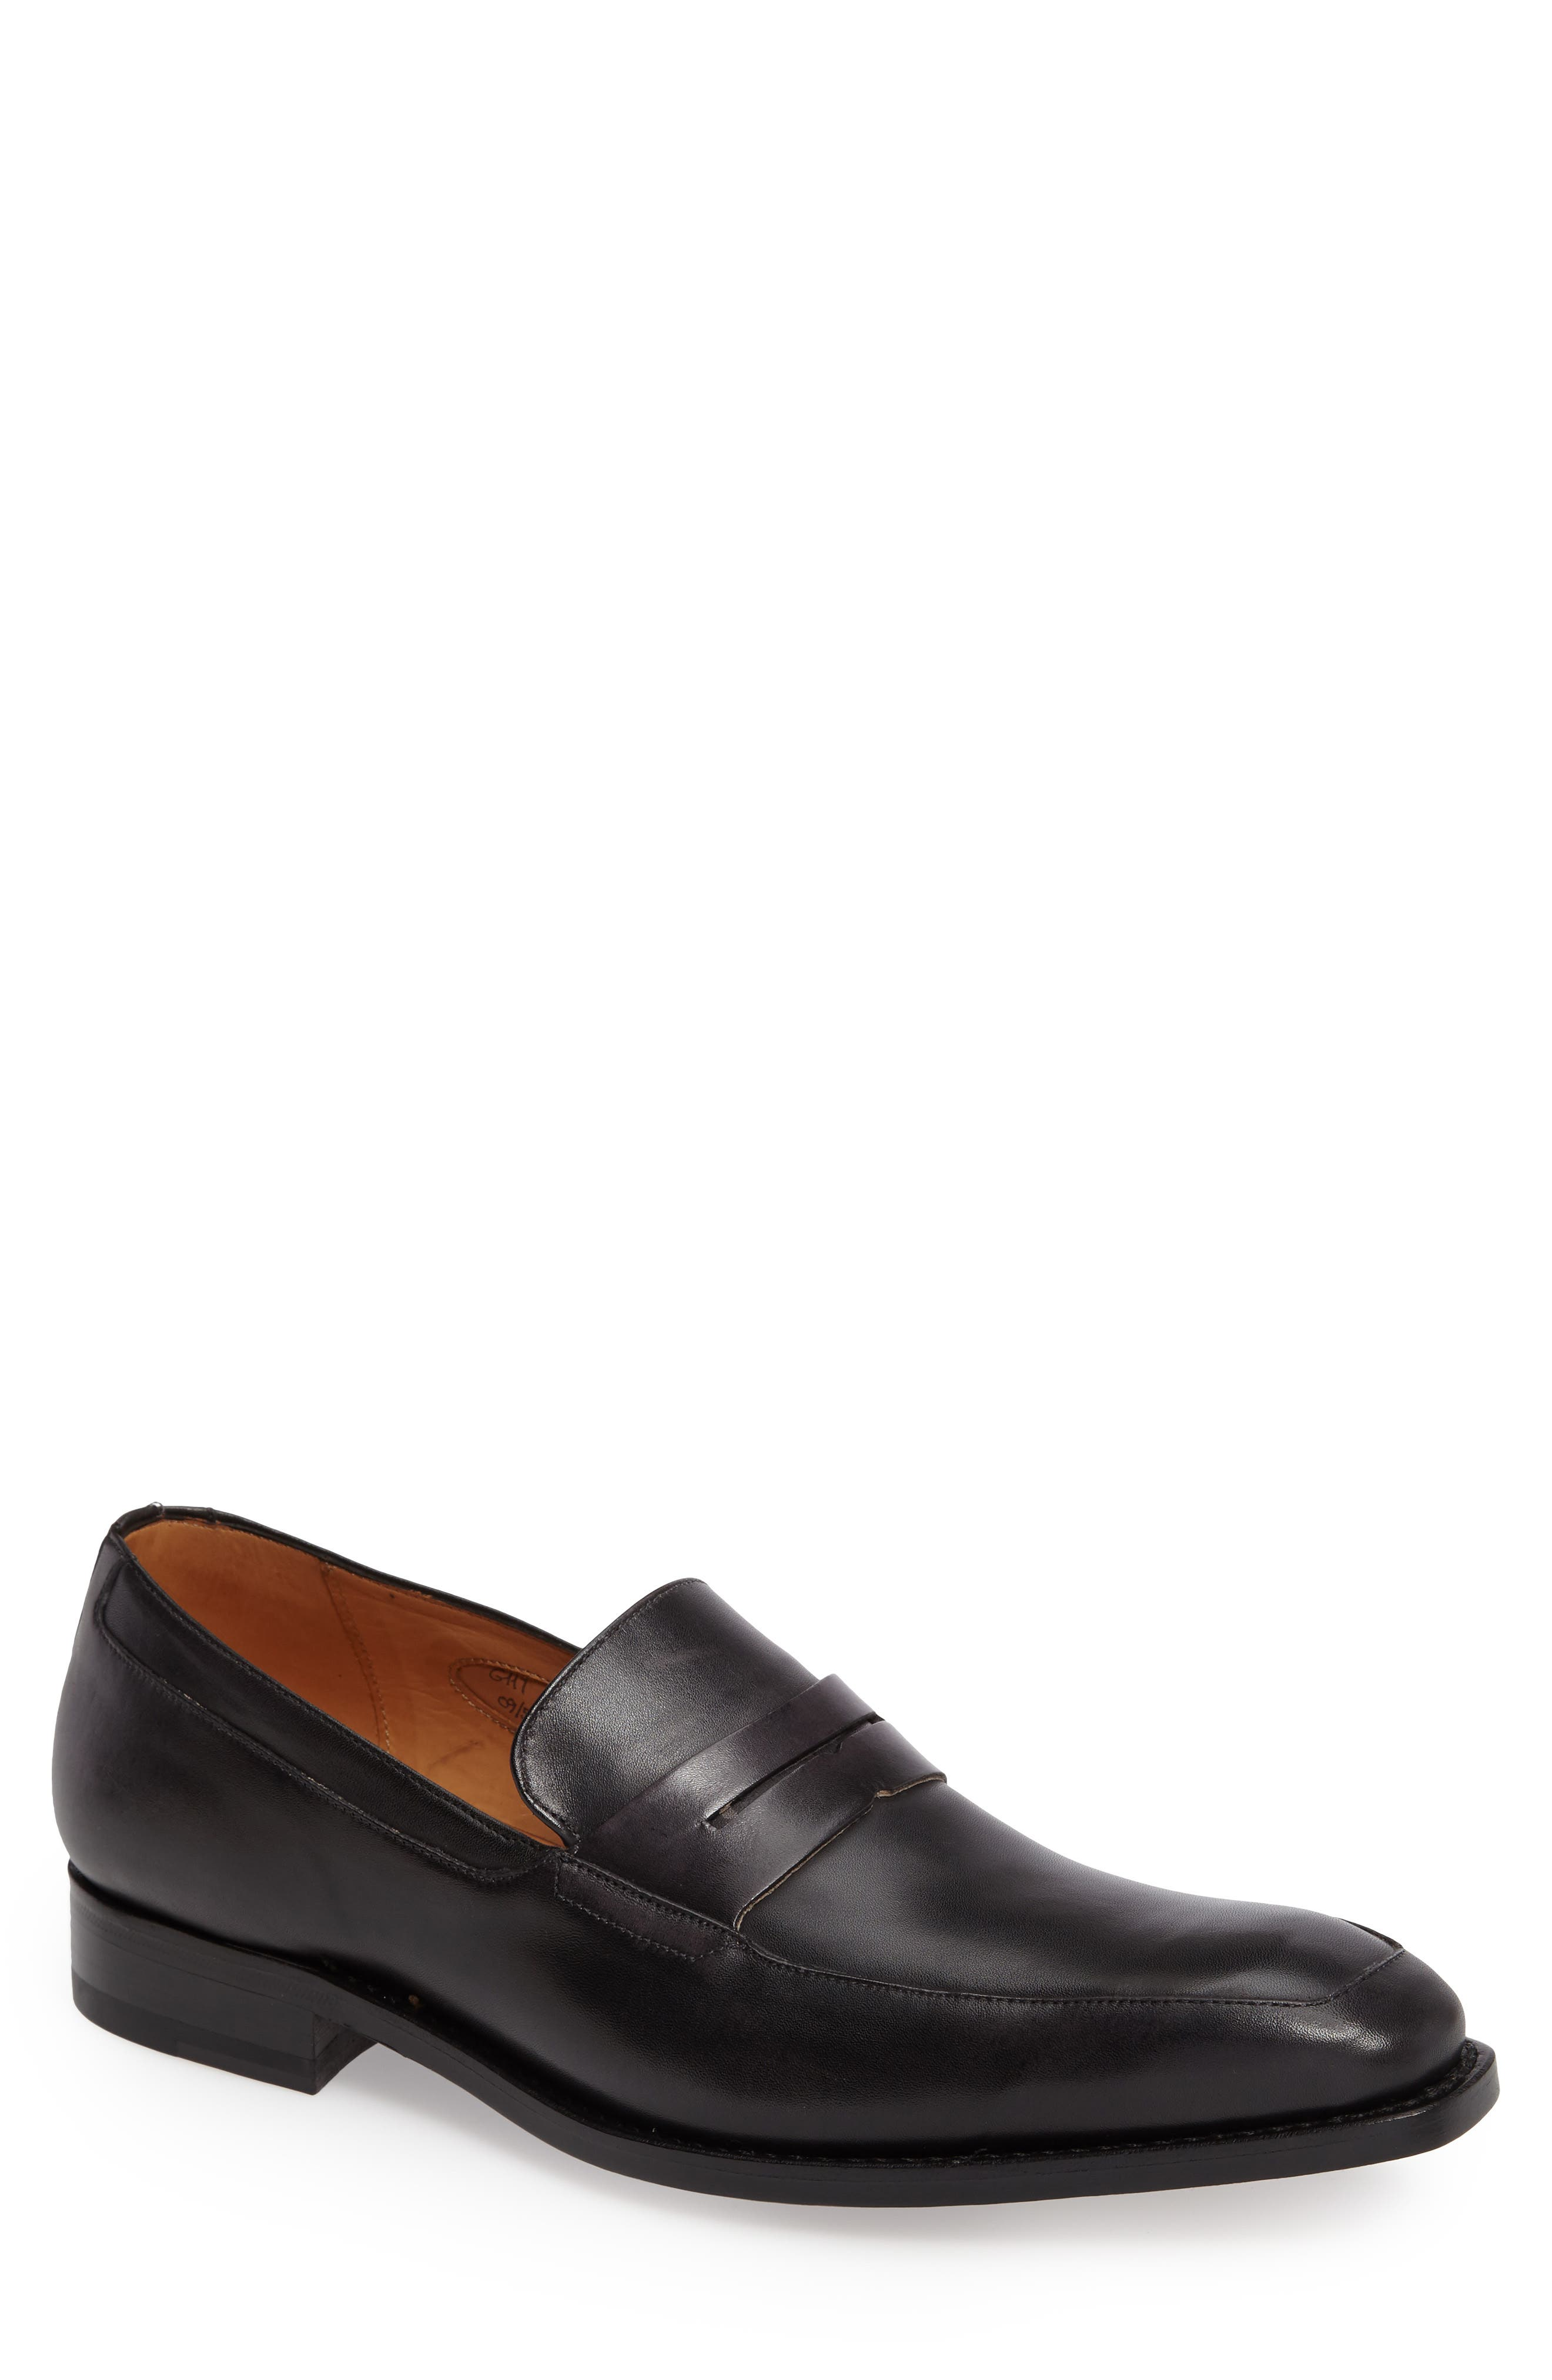 by Mezlan G117 Penny Loafer,                             Main thumbnail 1, color,                             GRAPHITE